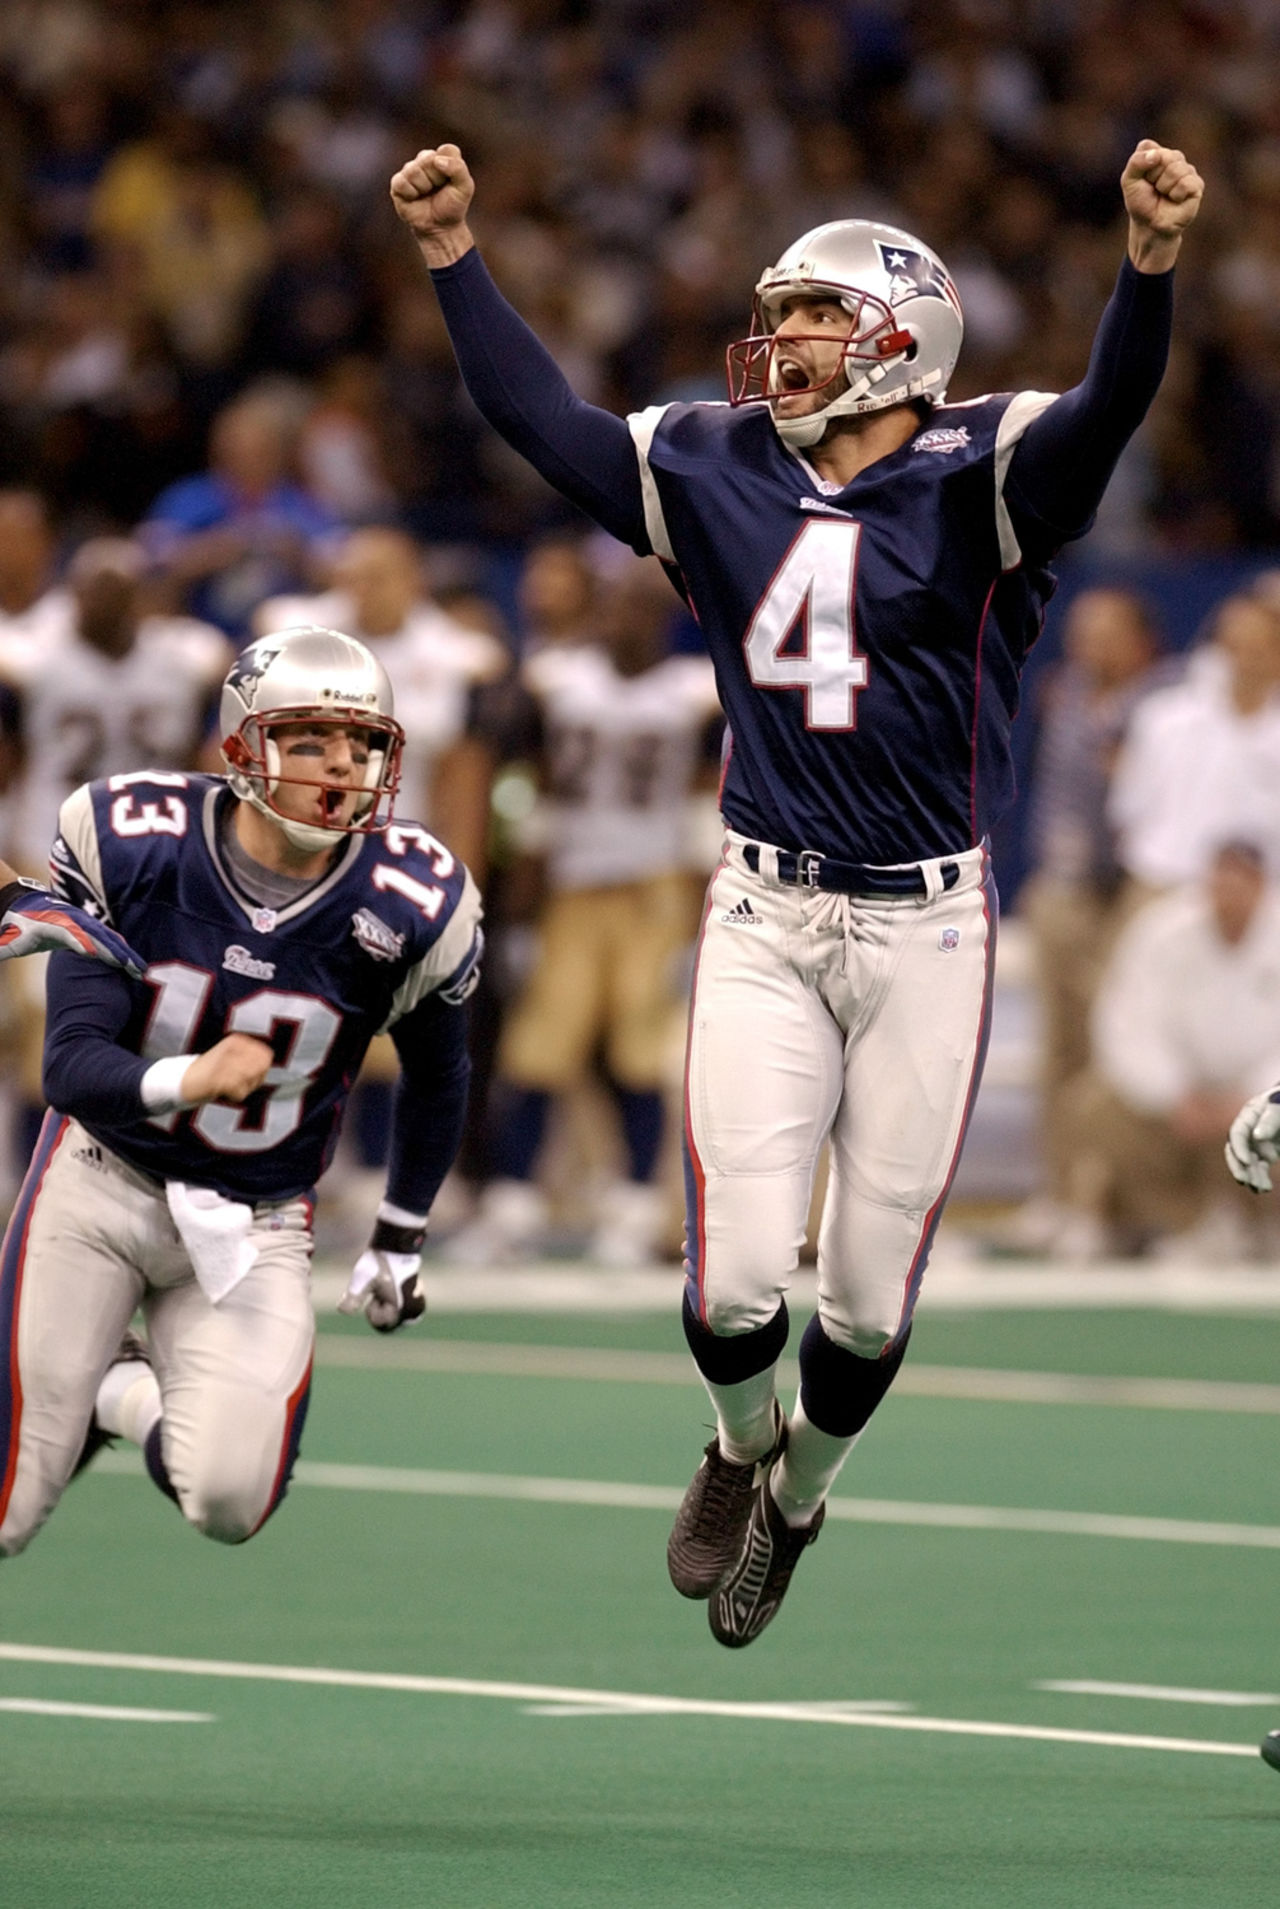 New England Patriots' kicker Adam Vinatieri celebrates his 48-yard game-winning field goal in the final seconds of Super Bowl XXXVI against the St. Louis Rams on Sunday, Feb. 3, 2002 in New Orleans. At left is teammate Ken Walters.